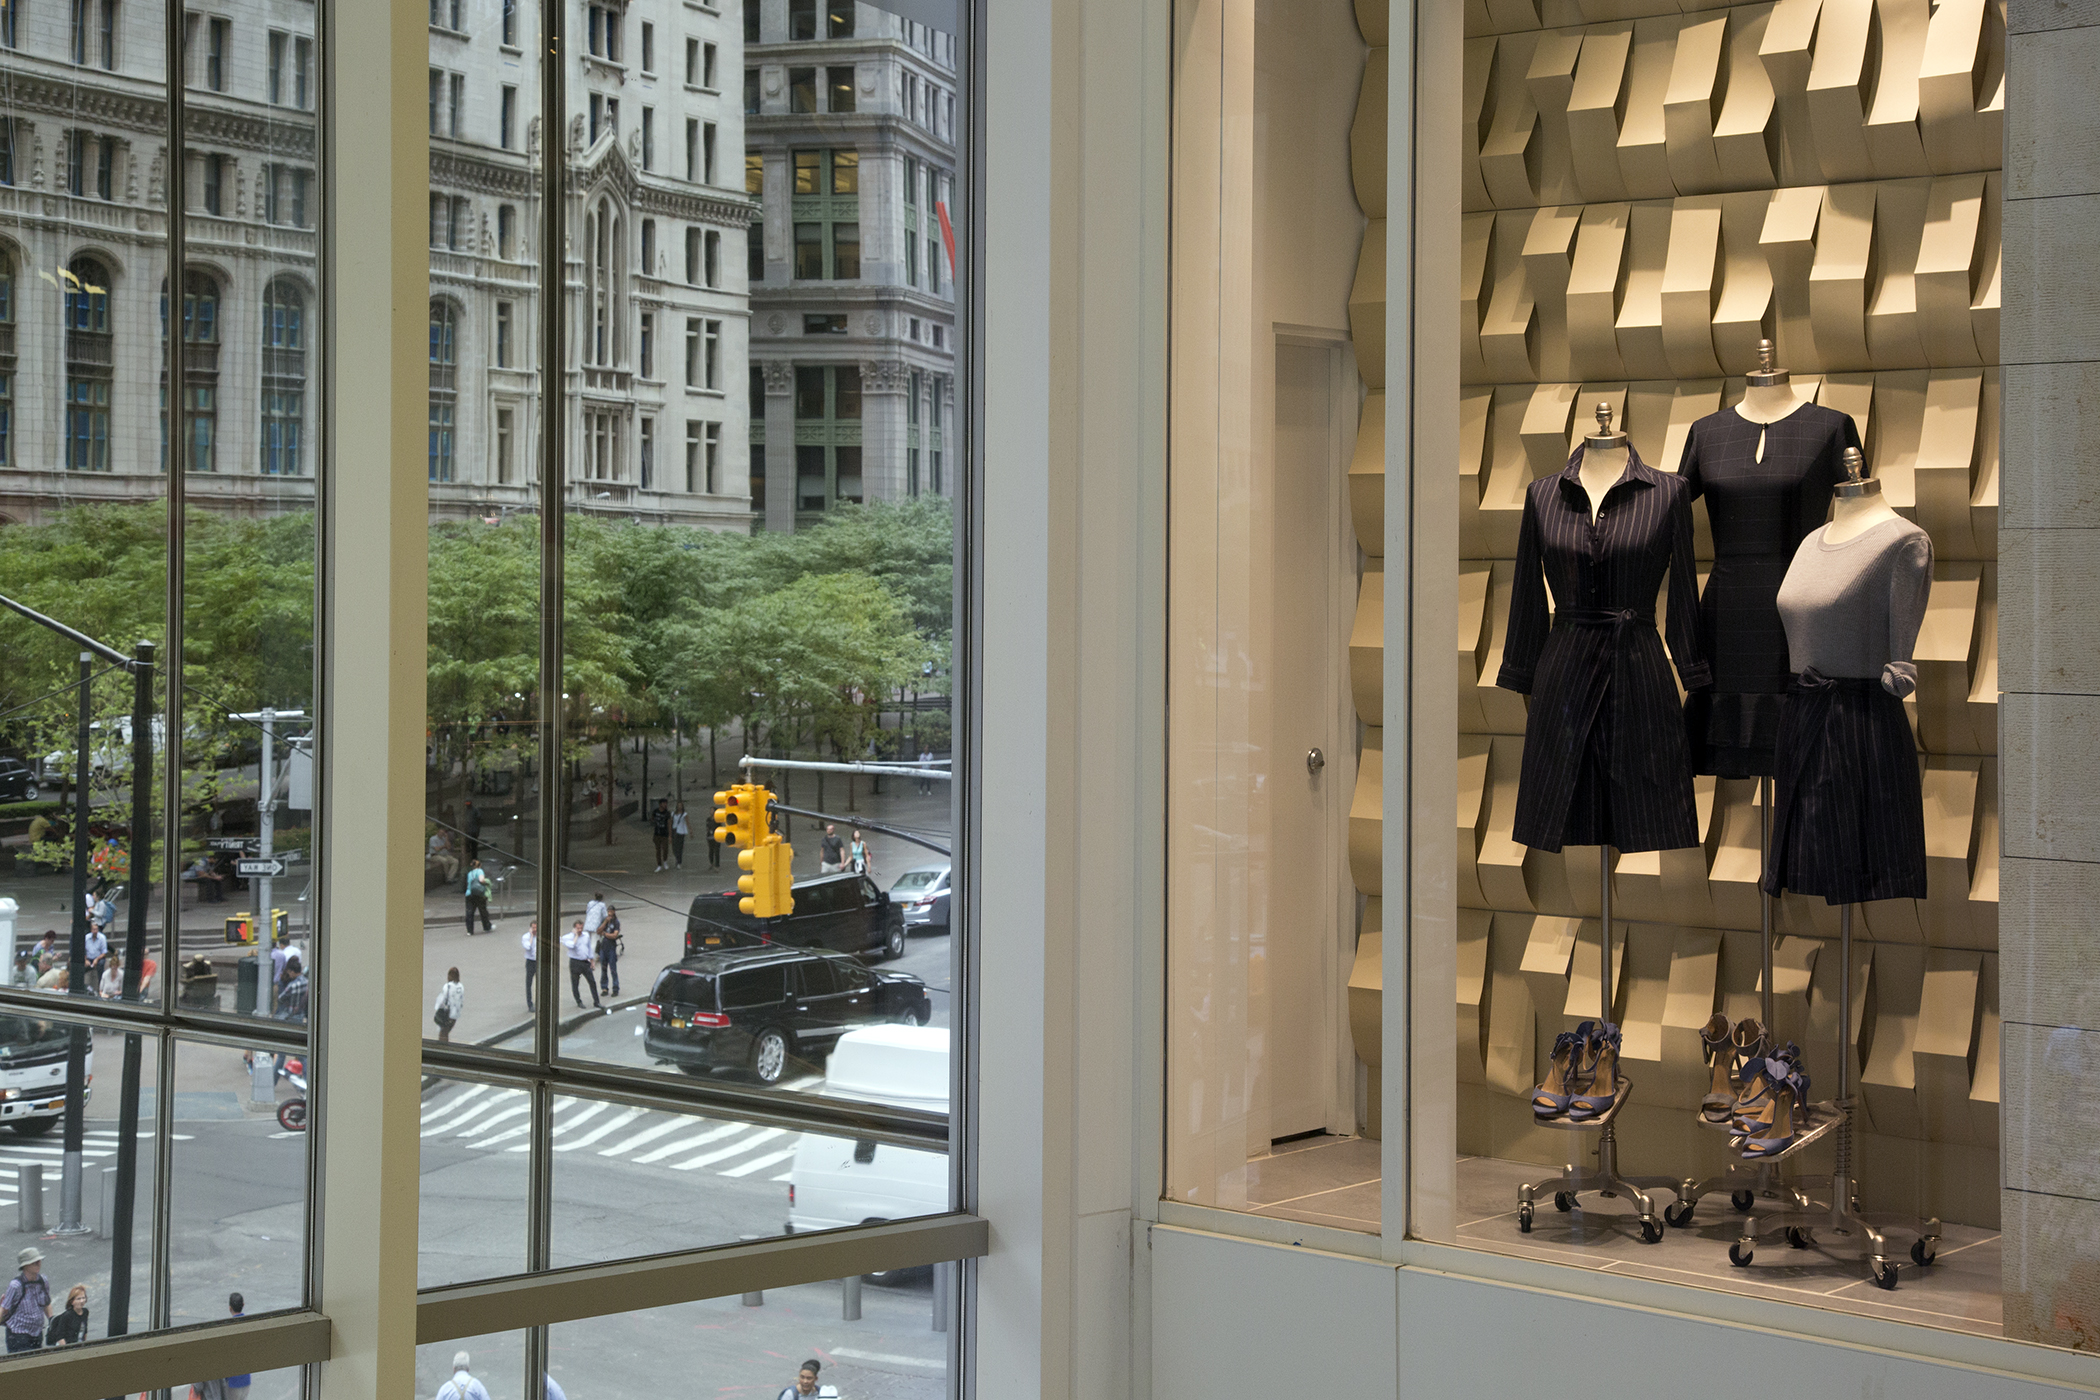 Banana Republic store windows overlooking Liberty Street, on the second floor of Westfield World Trade shopping mall, New York.